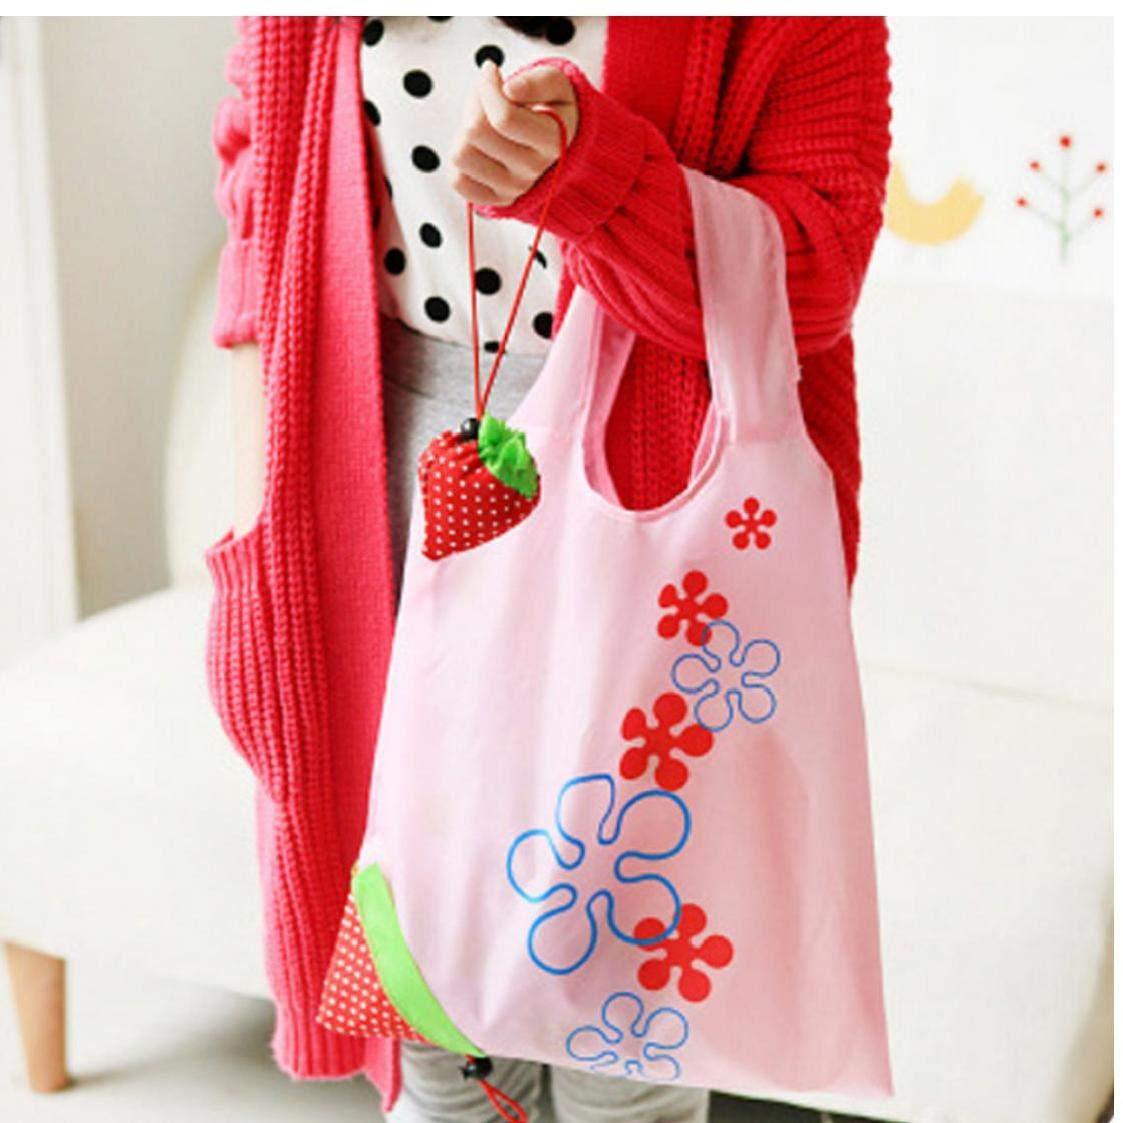 3pcs Creative Drawstring Bag Cartoon Strawberry Shaped Shopping Bag Reusable Grocery Shopping Tote Bags Folding Pouch Storage Bags